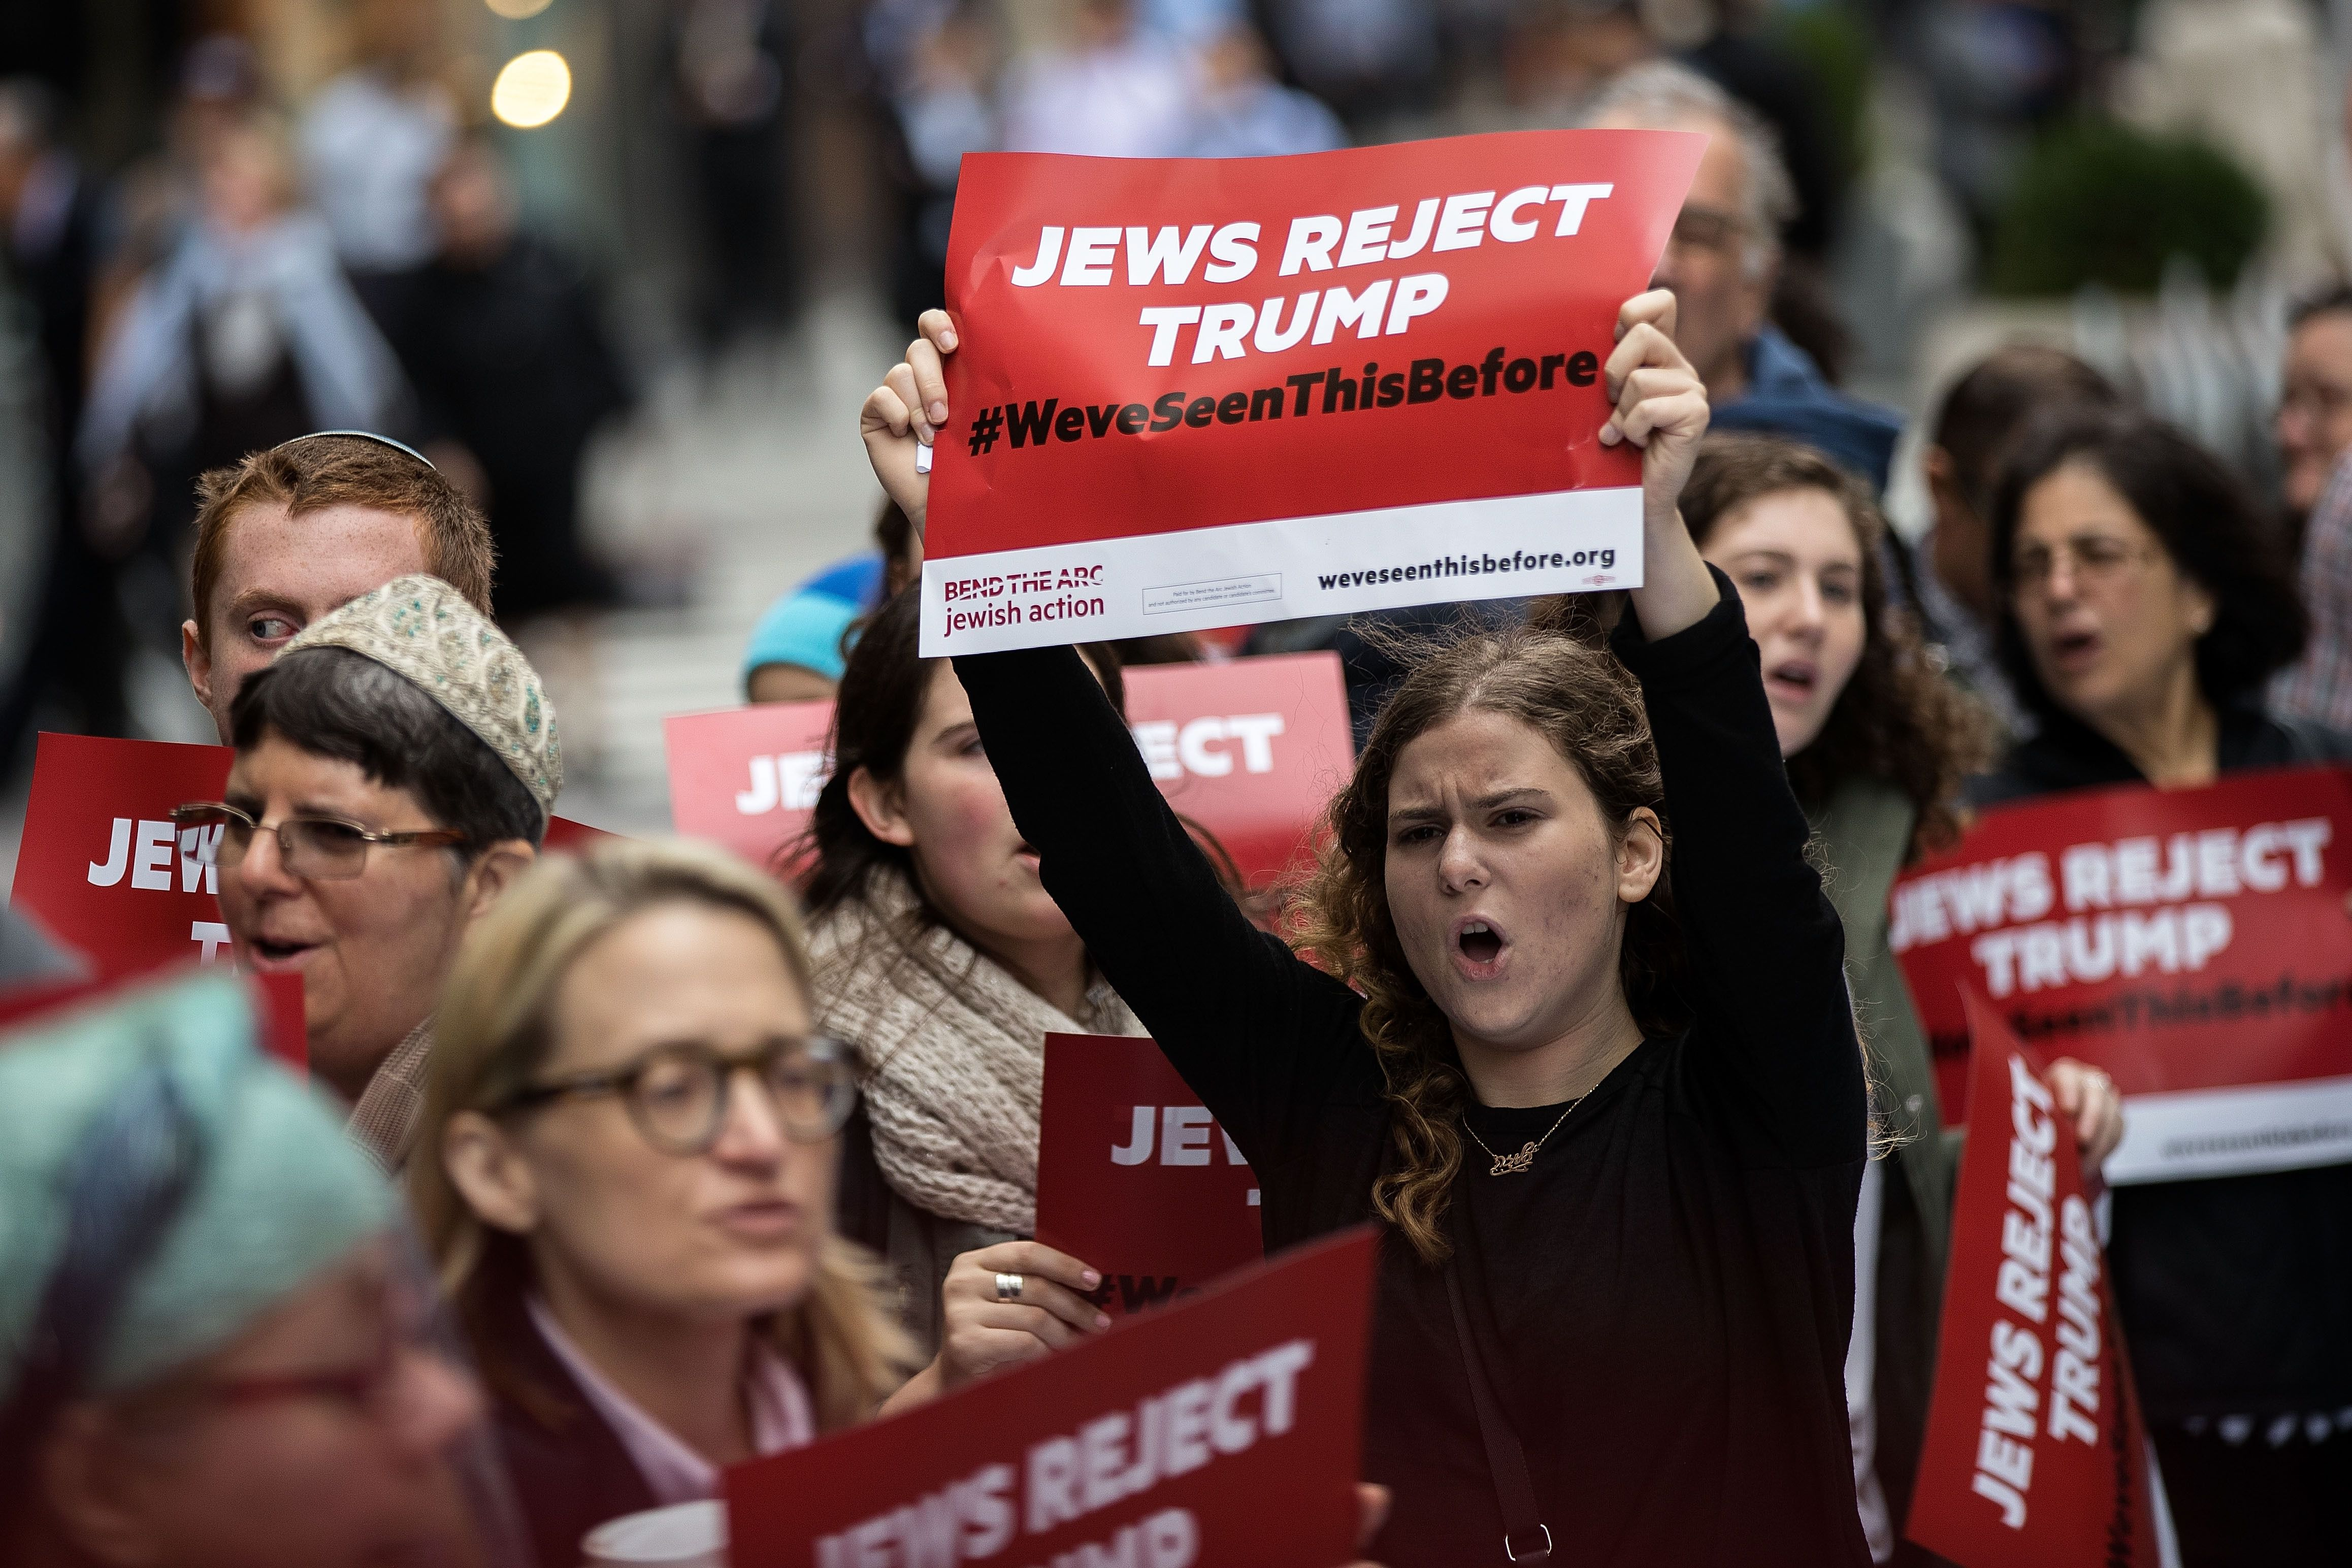 Between Guilt and Fear: White, Jewish, and Female after a Trump ...